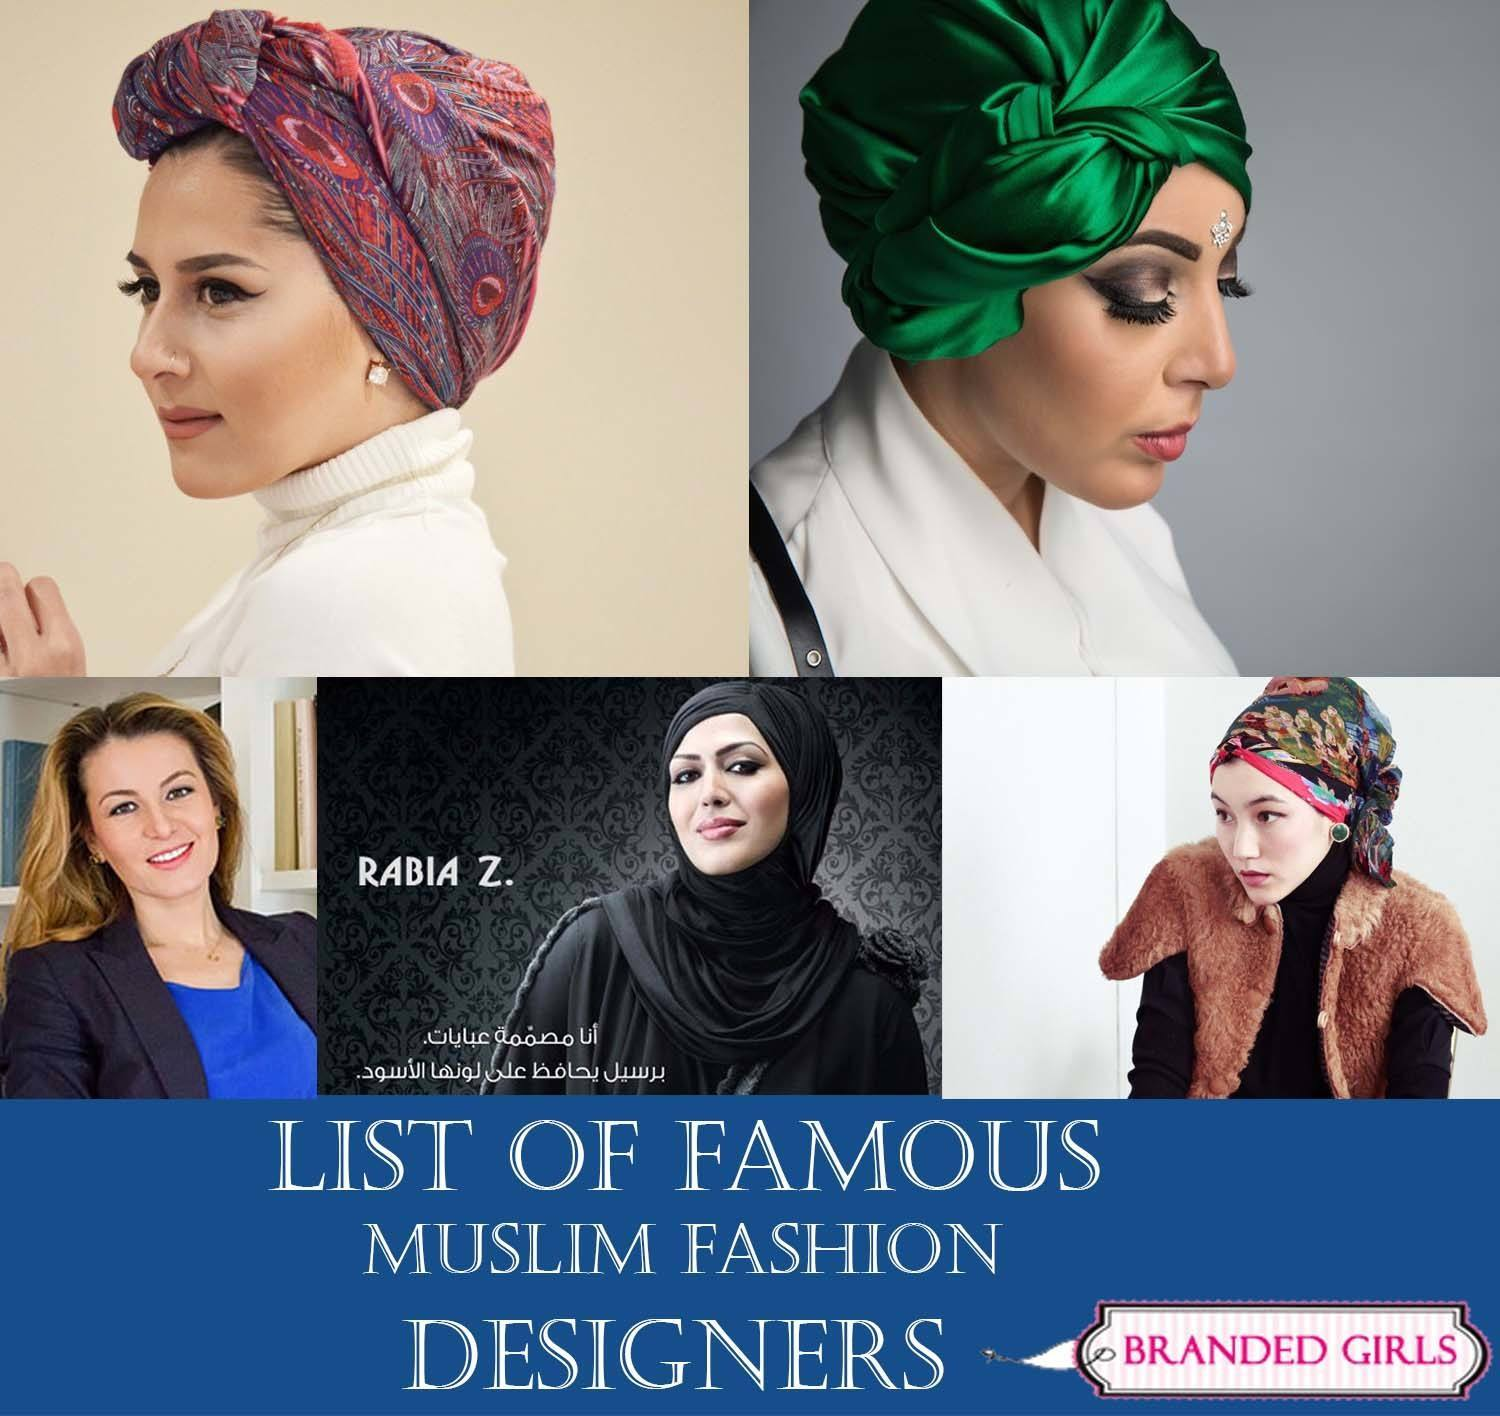 list of famous muslim fashion designers in the world